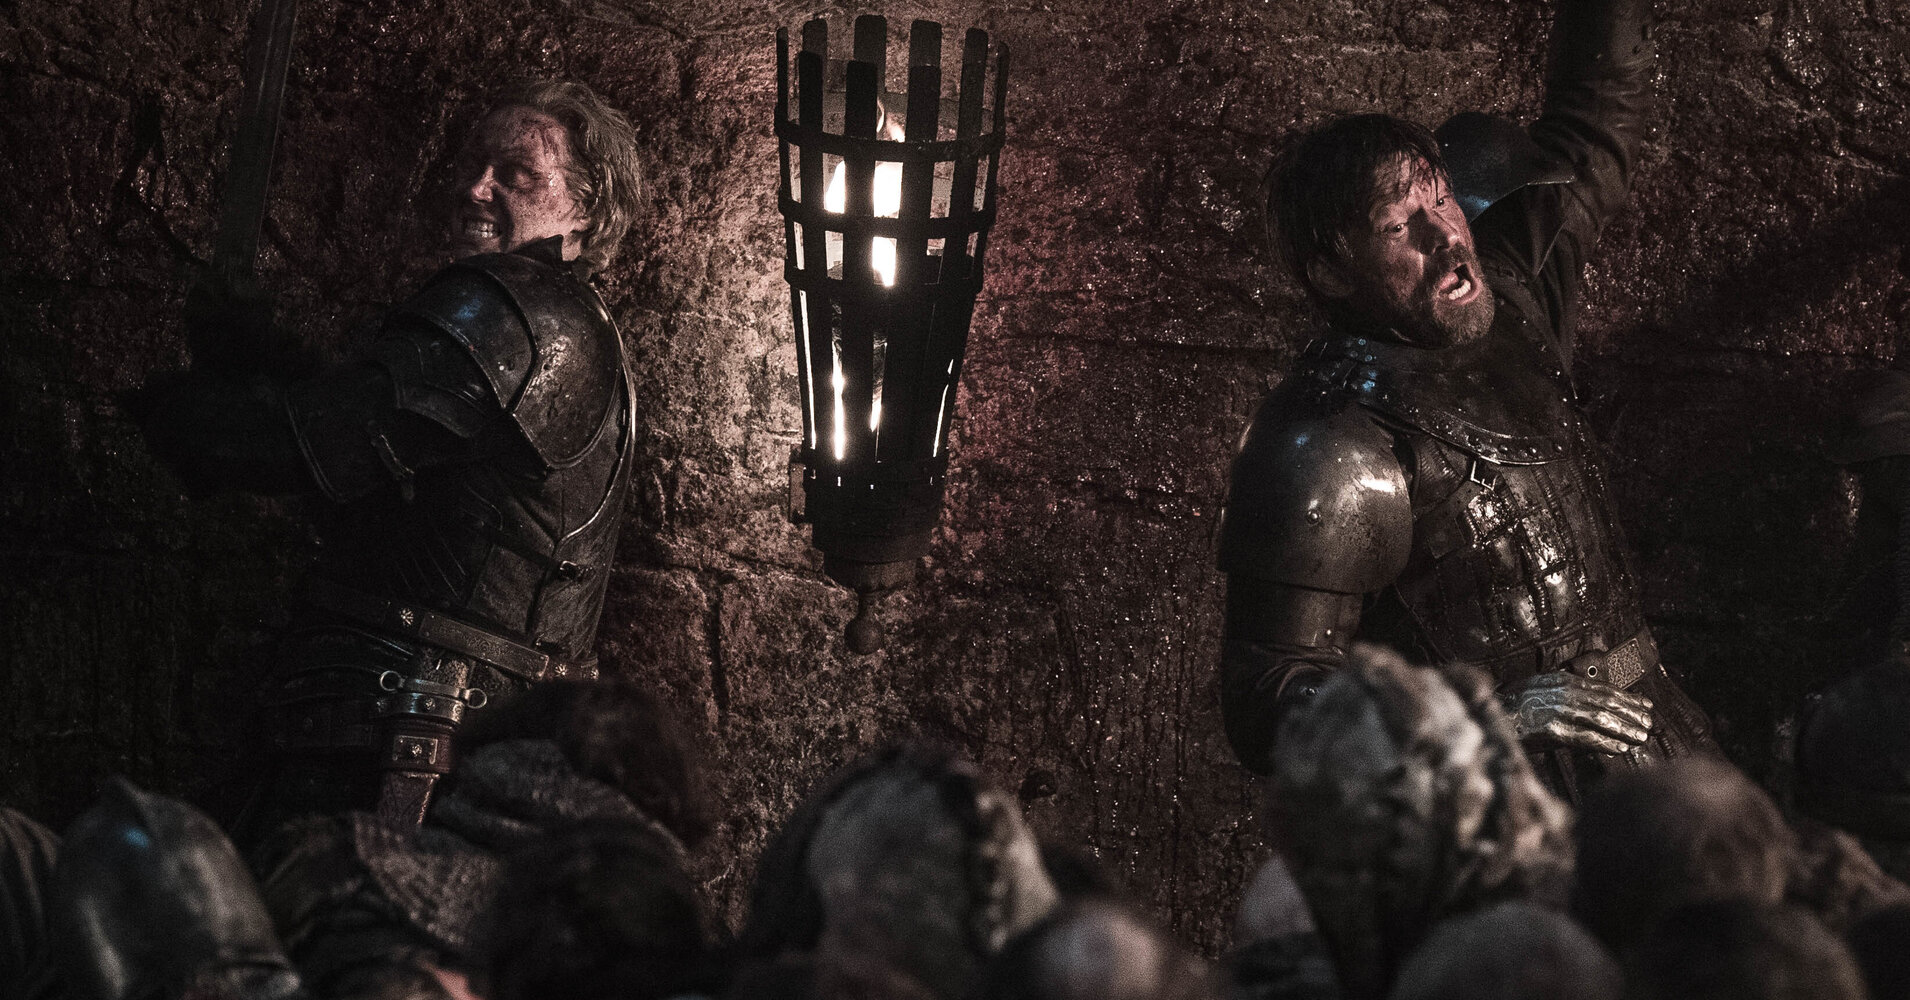 Jaime Lannister And Brienne Of Tarth Make Sweet, Sweet Love On 'Game Of Thrones'